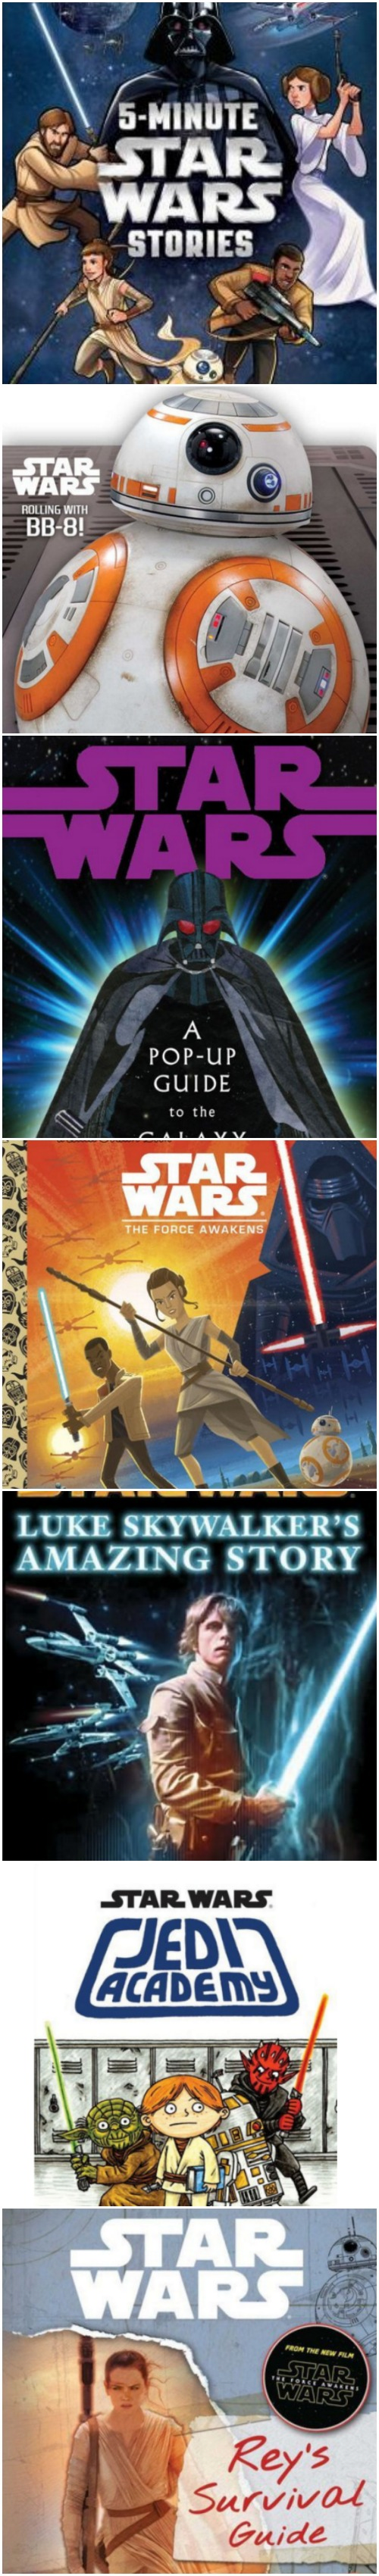 Star Wars Books for Kids - Red Apple Reading